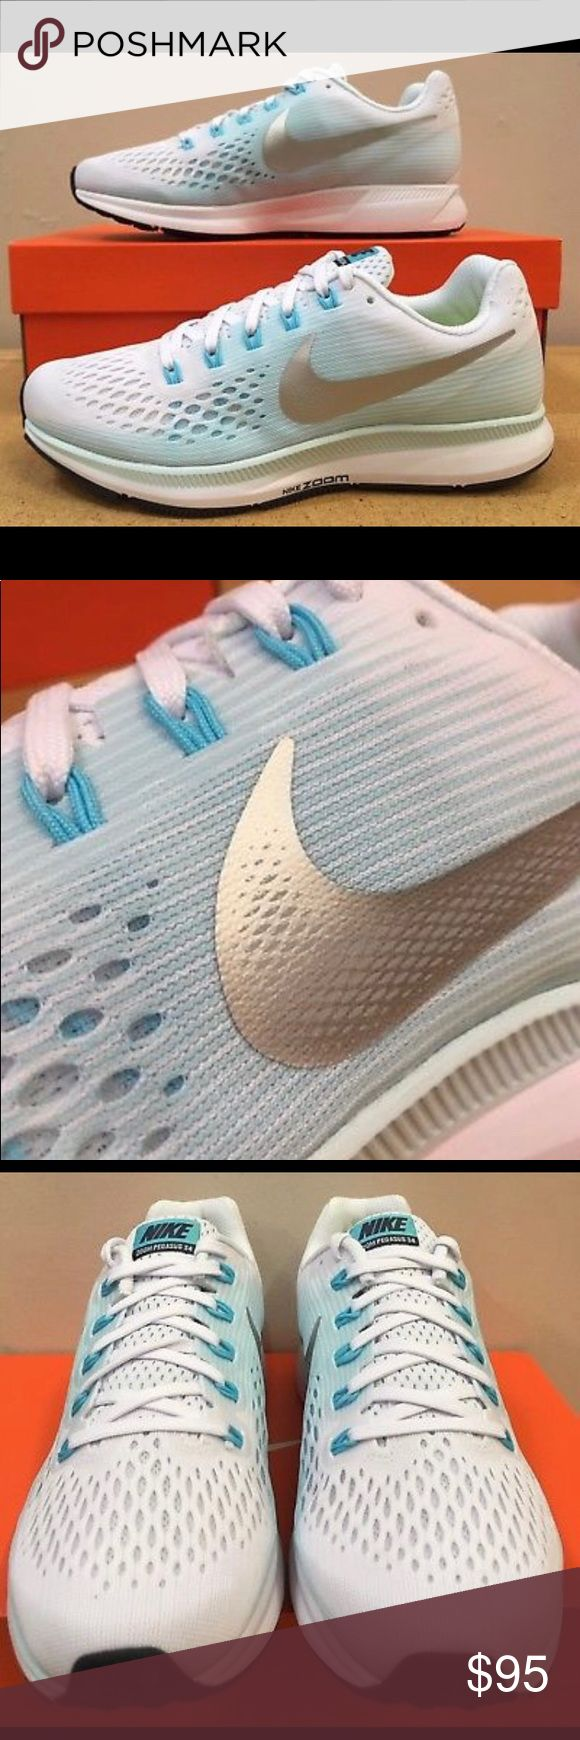 Nike Pegasus 34 Men+Women Running Shoe BRAND NEW IN BOX!!! You get free shipping(add to bundle so I can give you free shipping)Please refer to the size chart for men & women sizes. Price is firmed. Nike Shoes Sneakers